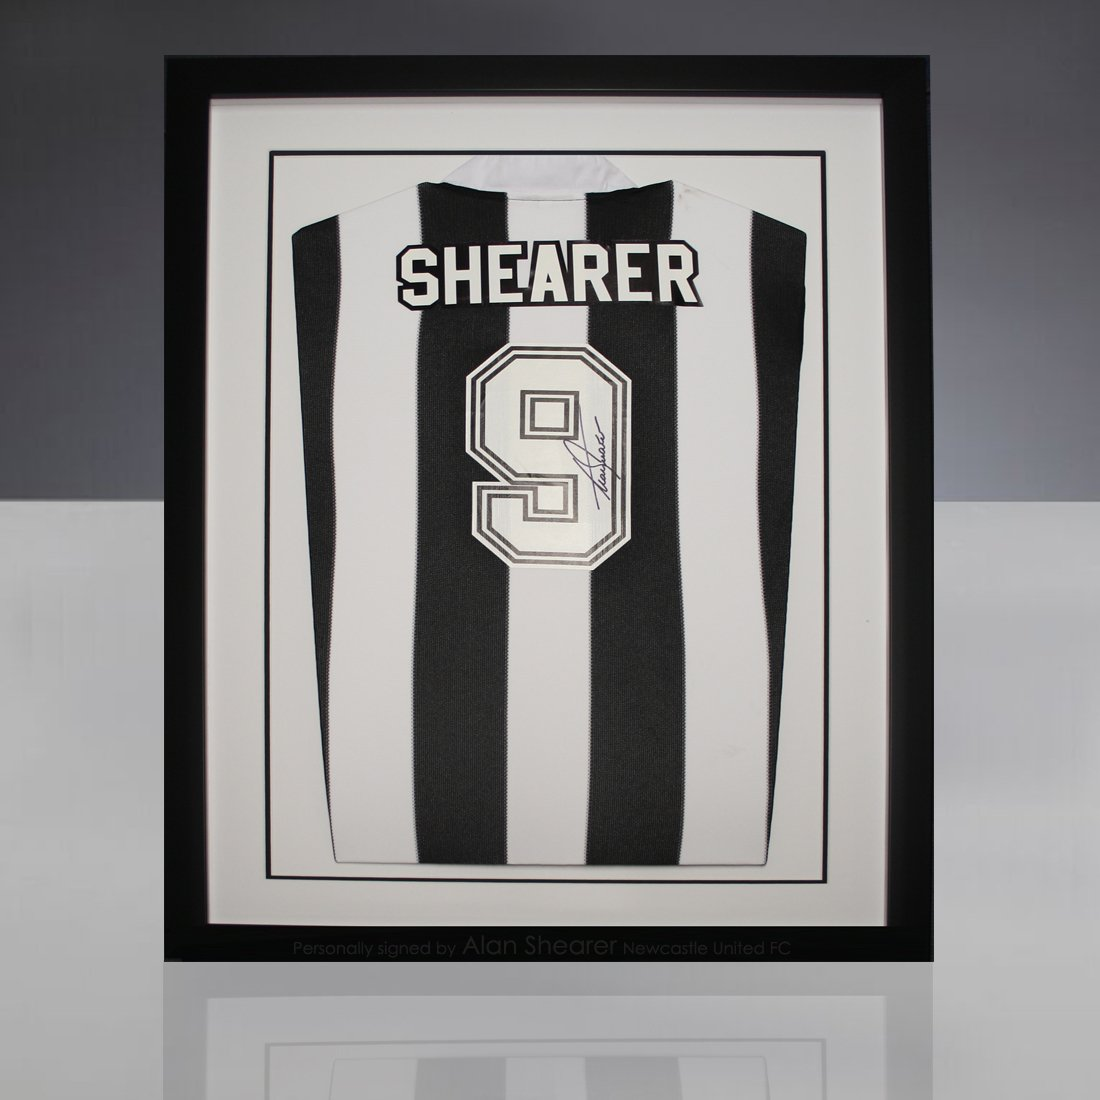 Alan Shearer Newcastle United FC leyenda, firmada de camiseta de fútbol: Amazon.es: Hogar